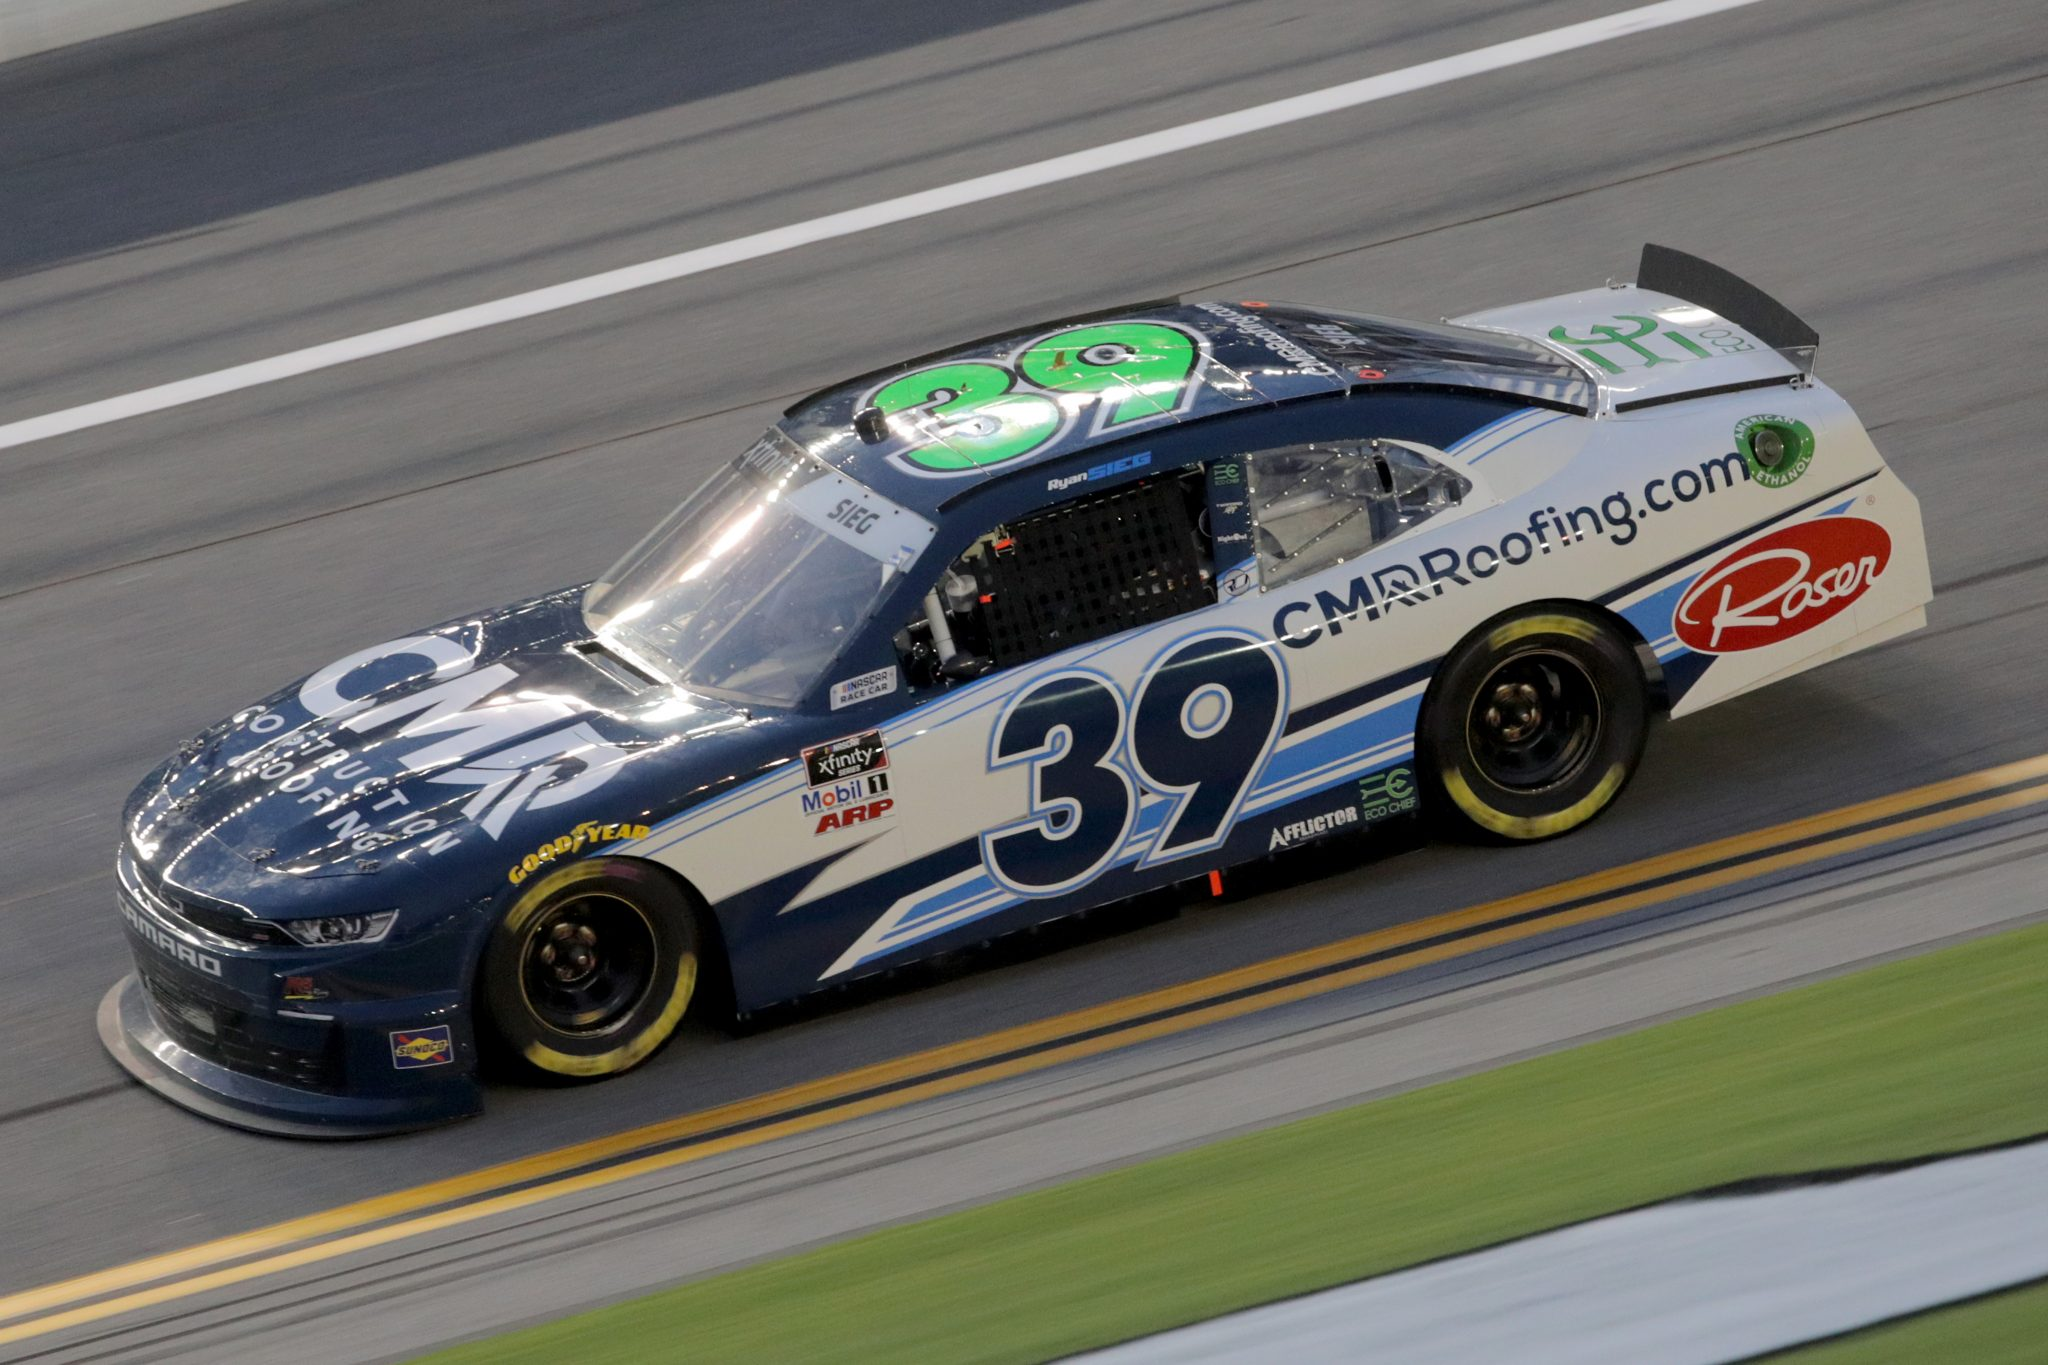 DAYTONA BEACH, FLORIDA - AUGUST 28: Ryan Sieg, driver of the #39 CMRRoofing.com Chevrolet, drives during the NASCAR Xfinity Series Wawa 250 Powered by Coca-Cola at Daytona International Speedway on August 28, 2020 in Daytona Beach, Florida. (Photo by Chris Graythen/Getty Images) | Getty Images